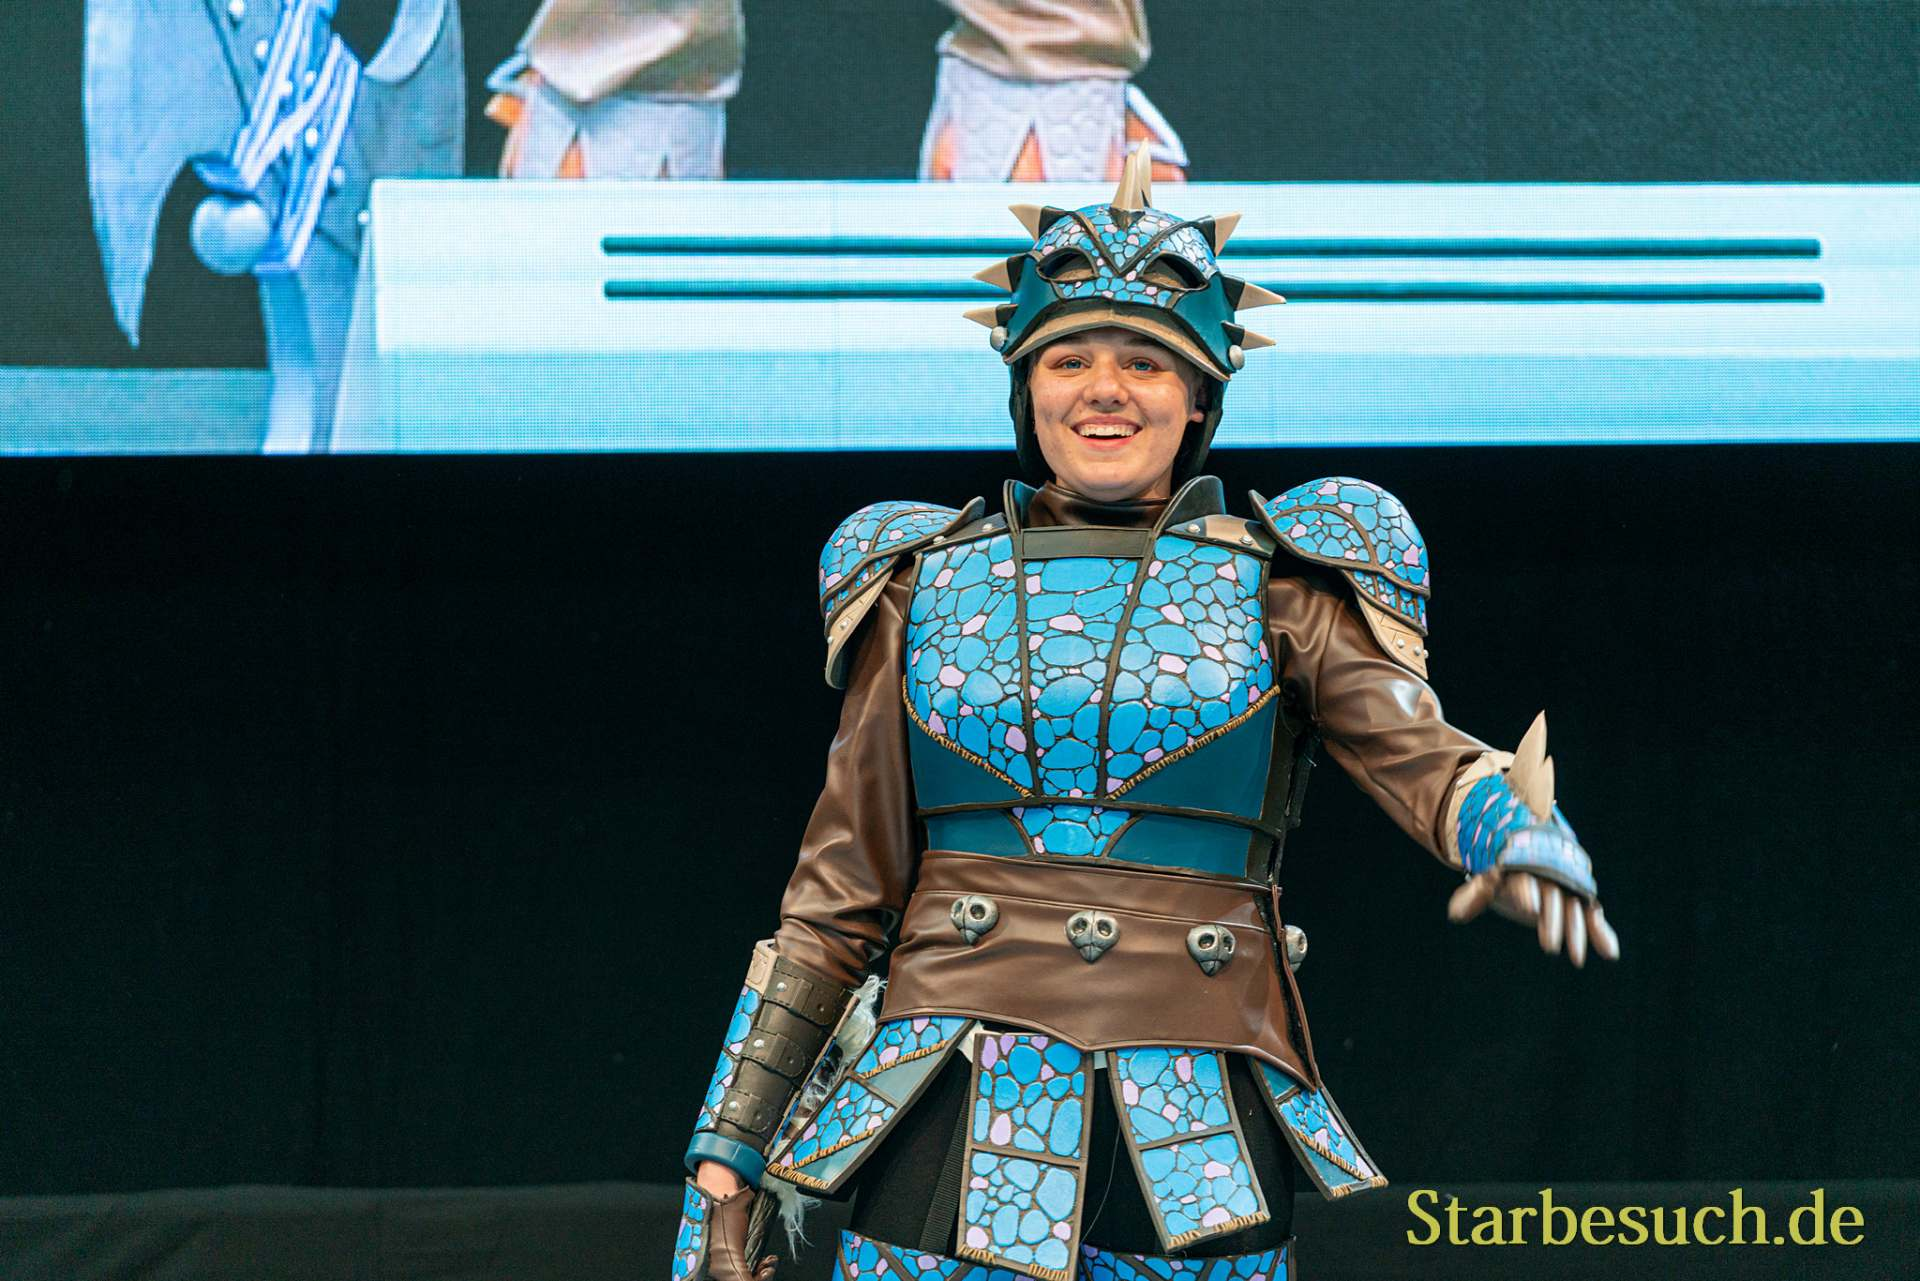 Cosplay Contest #12: NE Cosplay as Astrid from How to train your Dragon 3